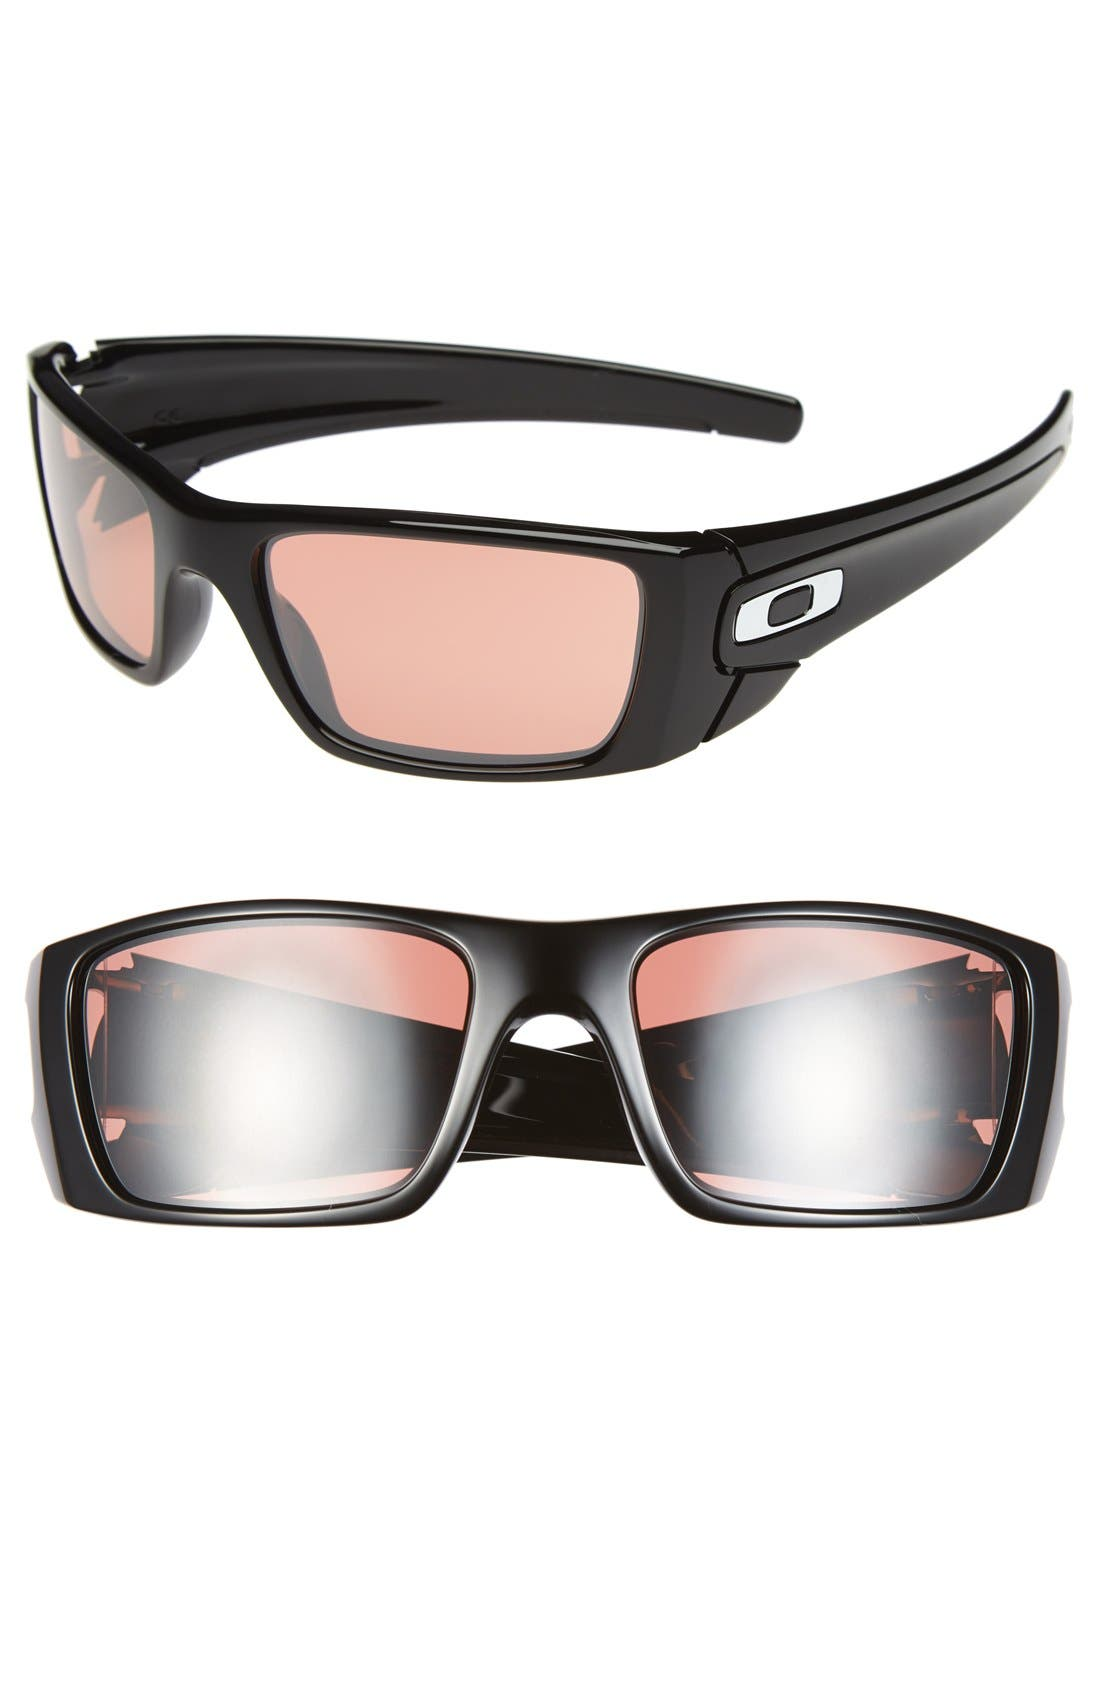 Alternate Image 1 Selected - Oakley 'Fuel Cell' 60mm Sunglasses